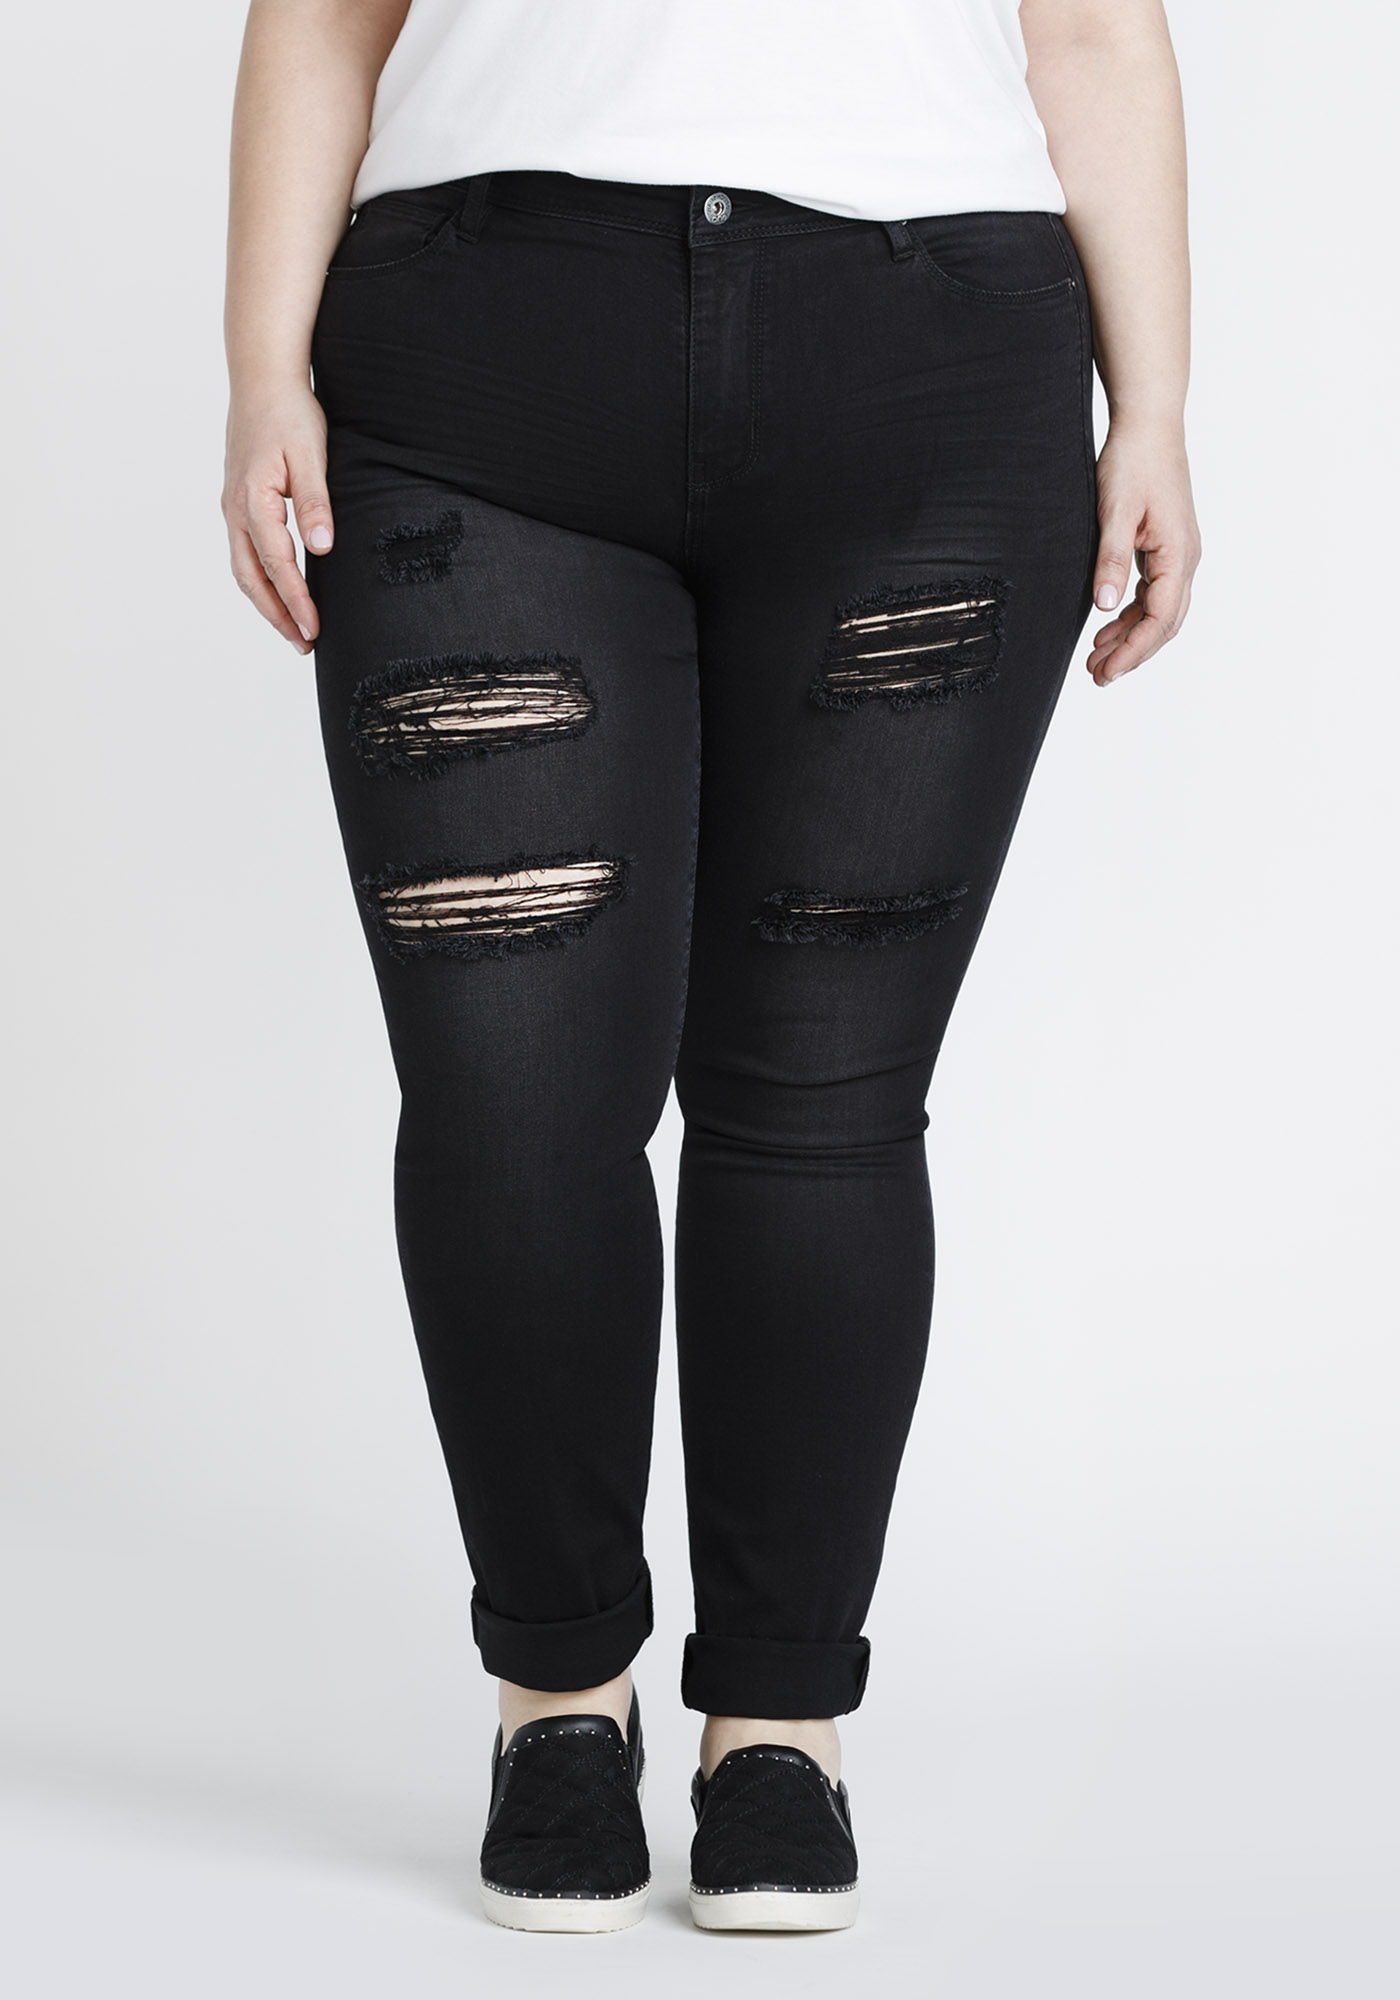 b8c8b246881 Women's Plus Size Black Ripped Skinny Jeans | Warehouse One